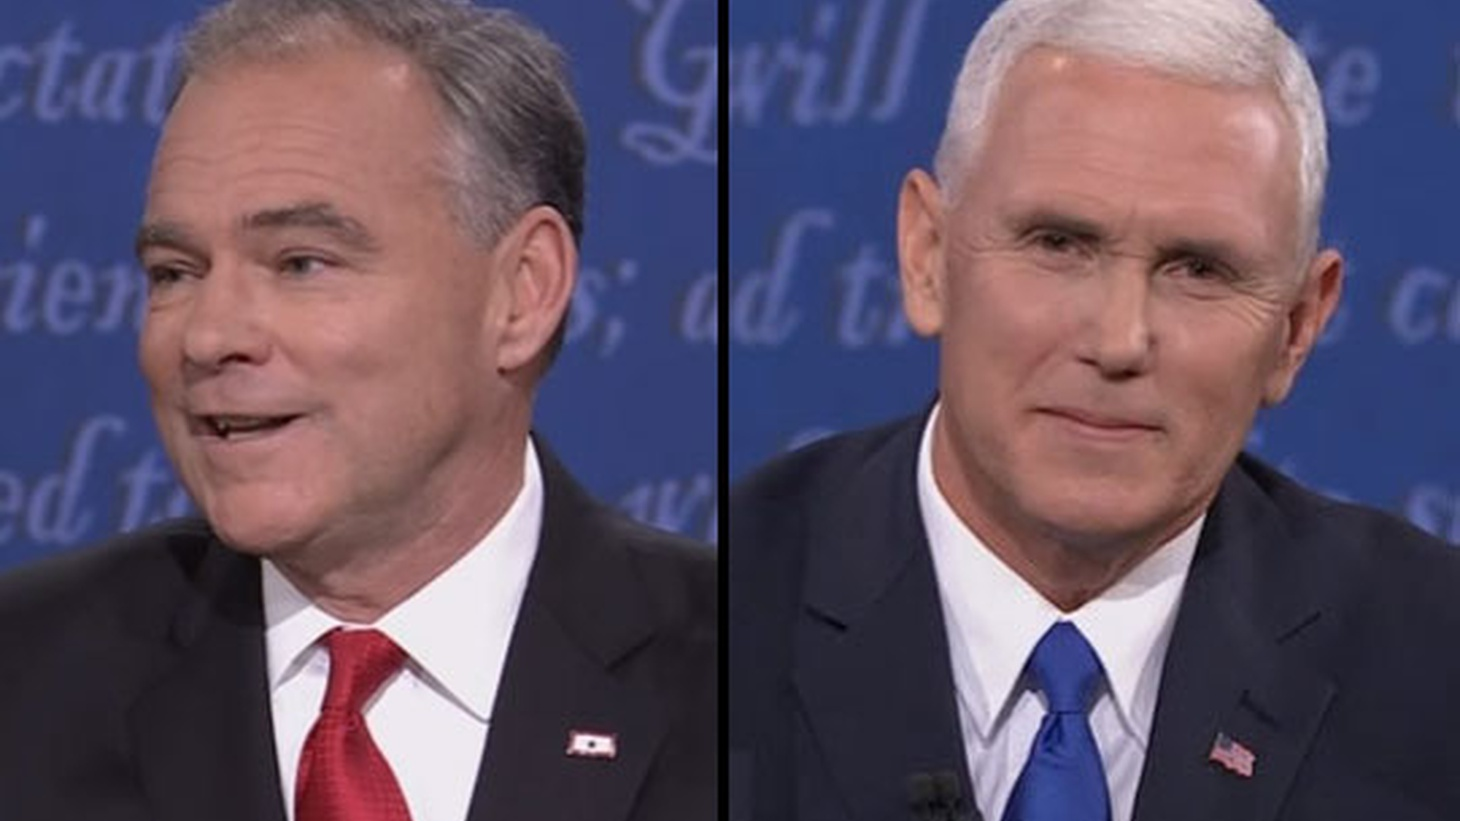 Mike Pence and Tim Kaine surprised the prognosticators in last night's vice presidential debate, introducing themselves to the voting public with a lively set of exchanges. Will it make any difference in the presidential campaign?